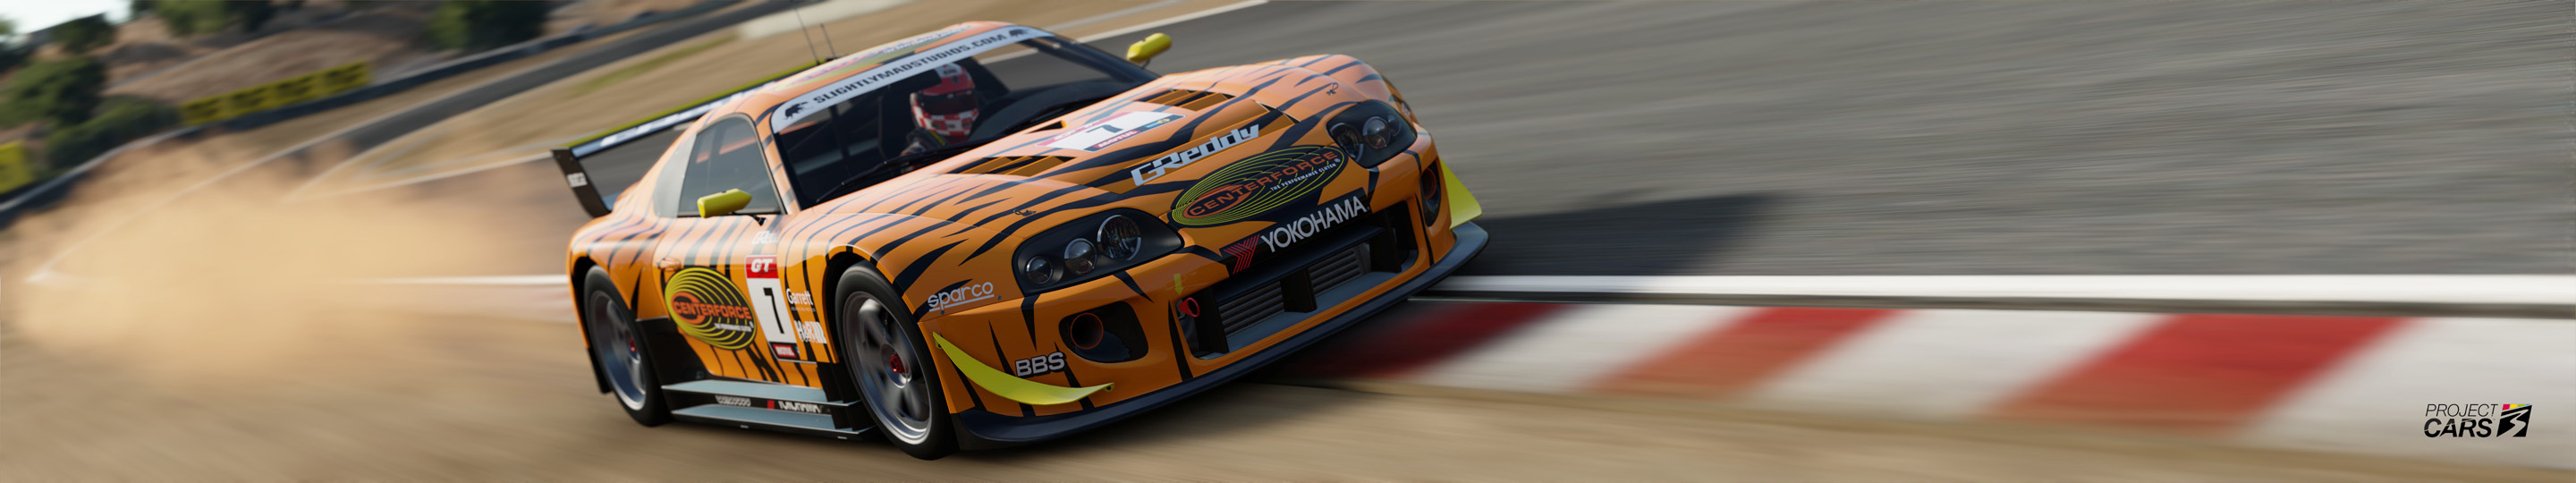 00 PROJECT CARS 3 new DLC 94 TOYOTA SUPRS MkIV RACING copy.jpg